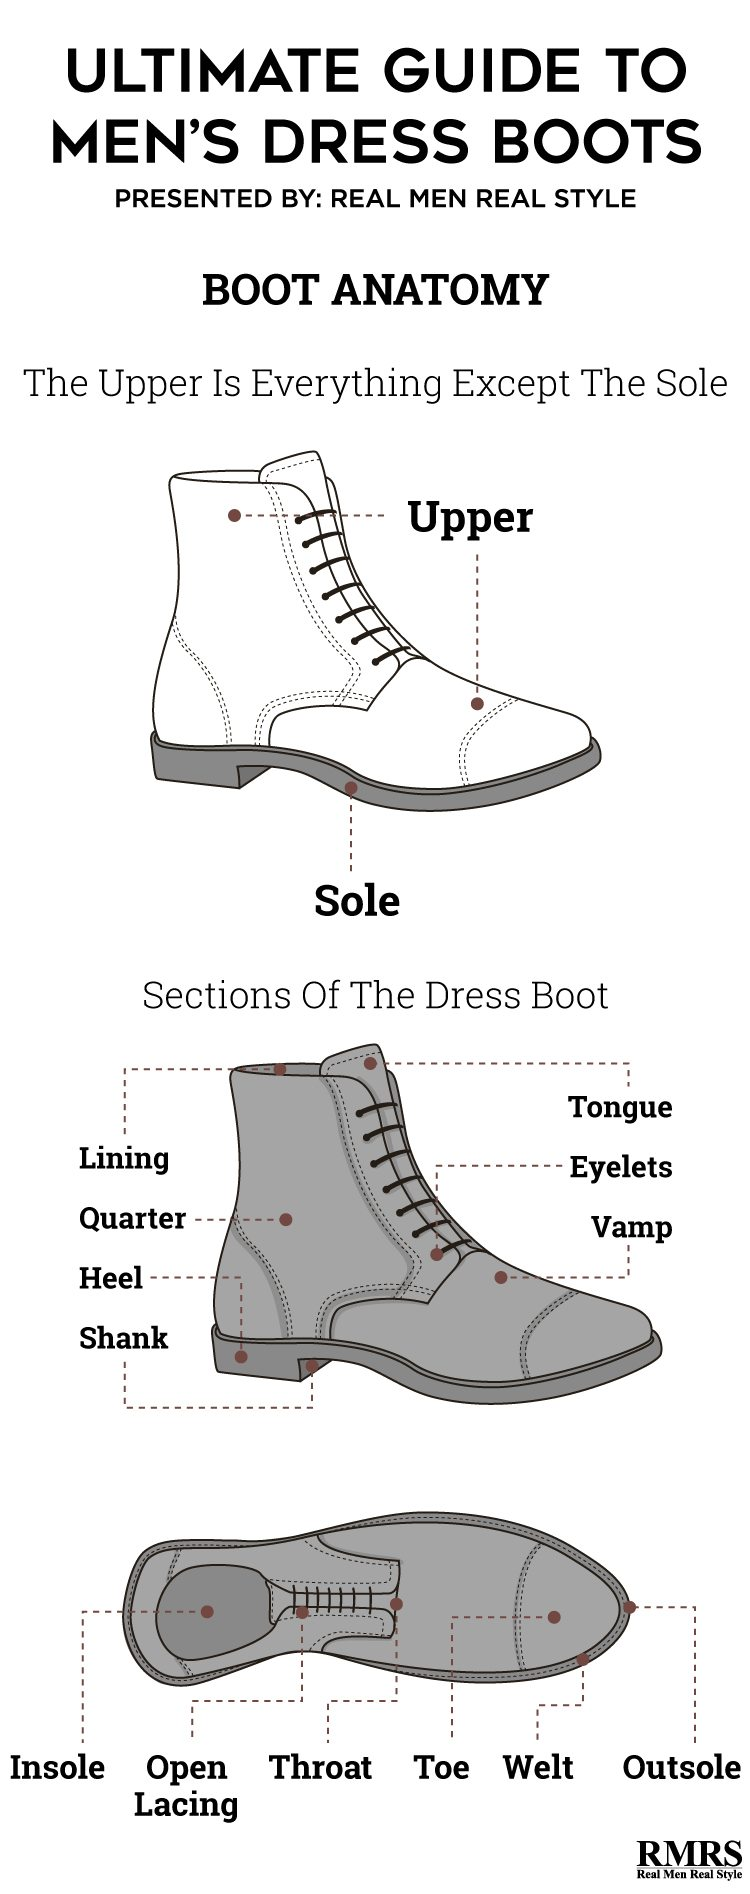 Dress Boots For Men - Chukka, Lace-Up And Chelsea Boot Styles